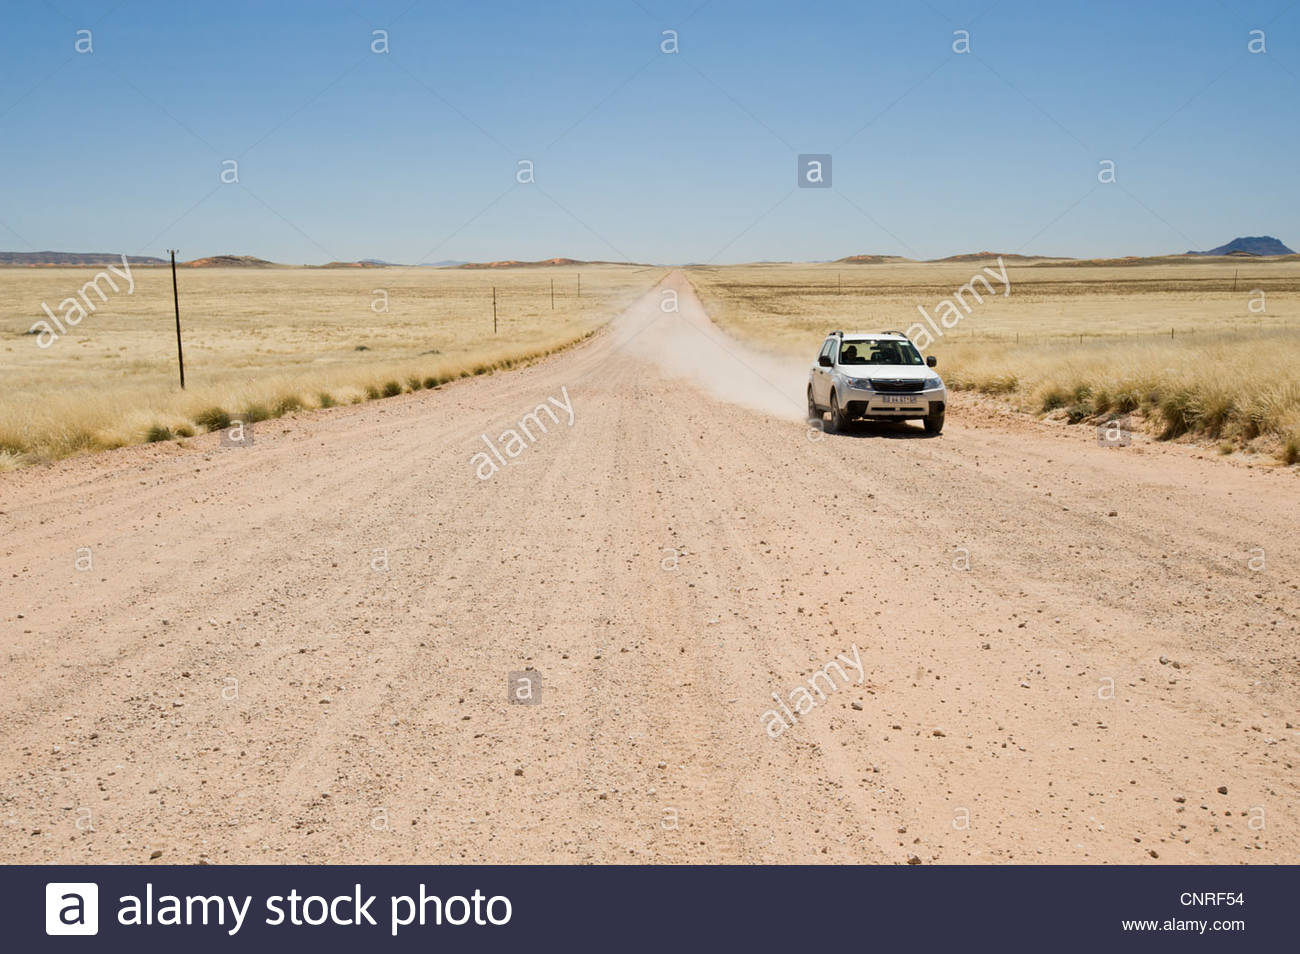 Desolate road through Namib Desert, Namibia - Stock Image